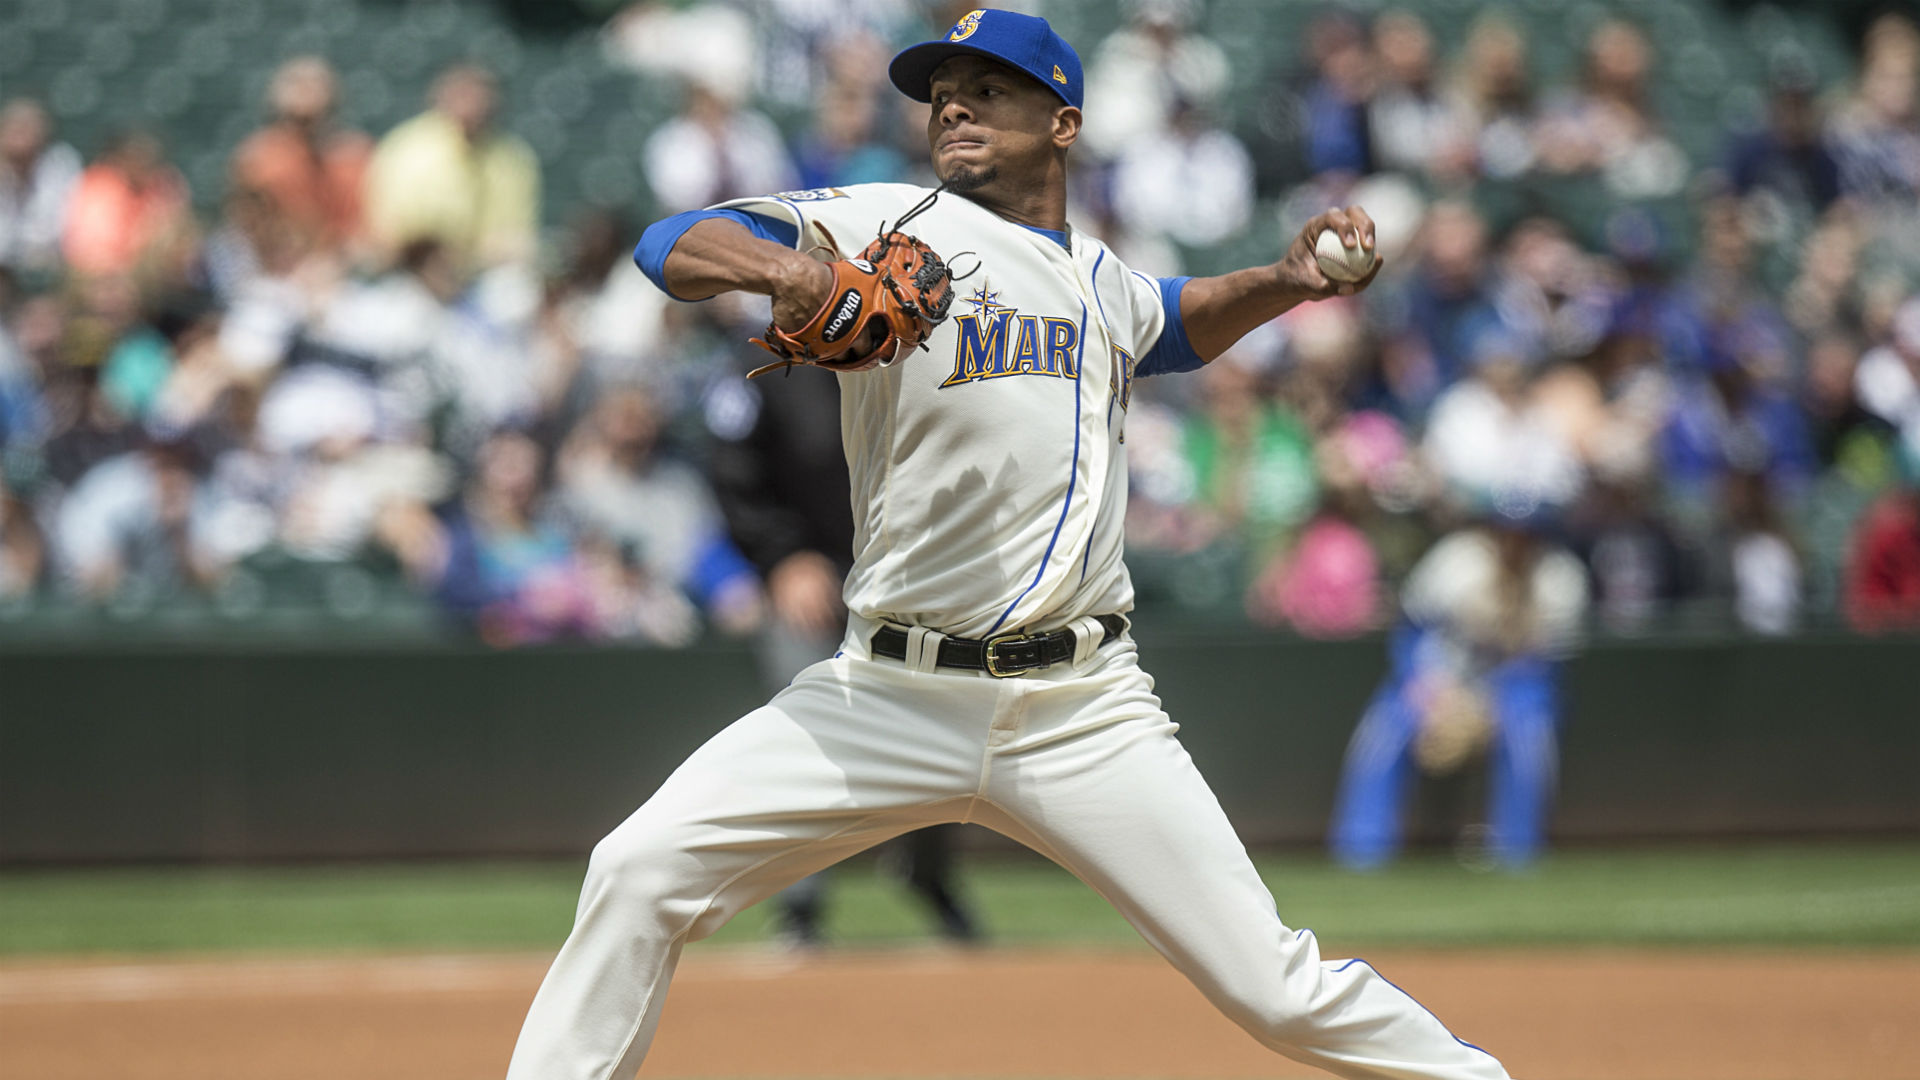 Miranda pitches complete game as Mariners sweep Rays